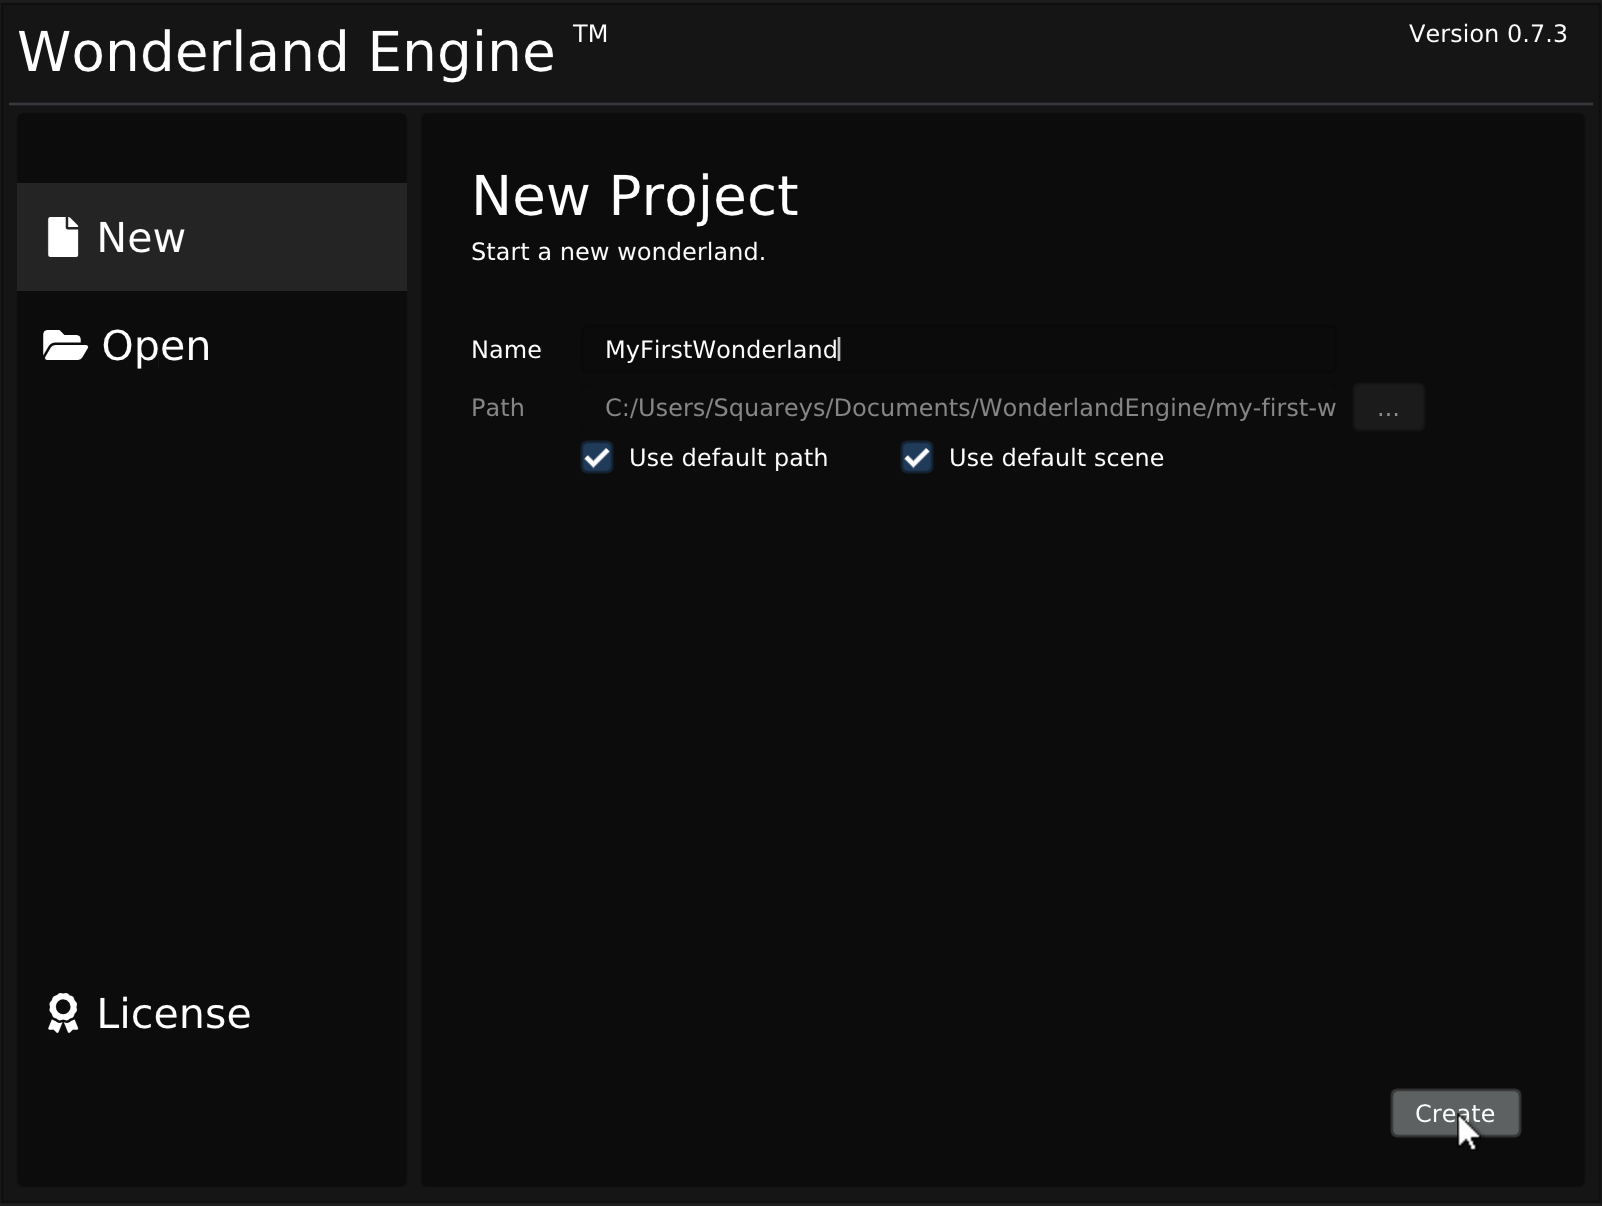 Sceenshot: Getting Started - Project Wizard